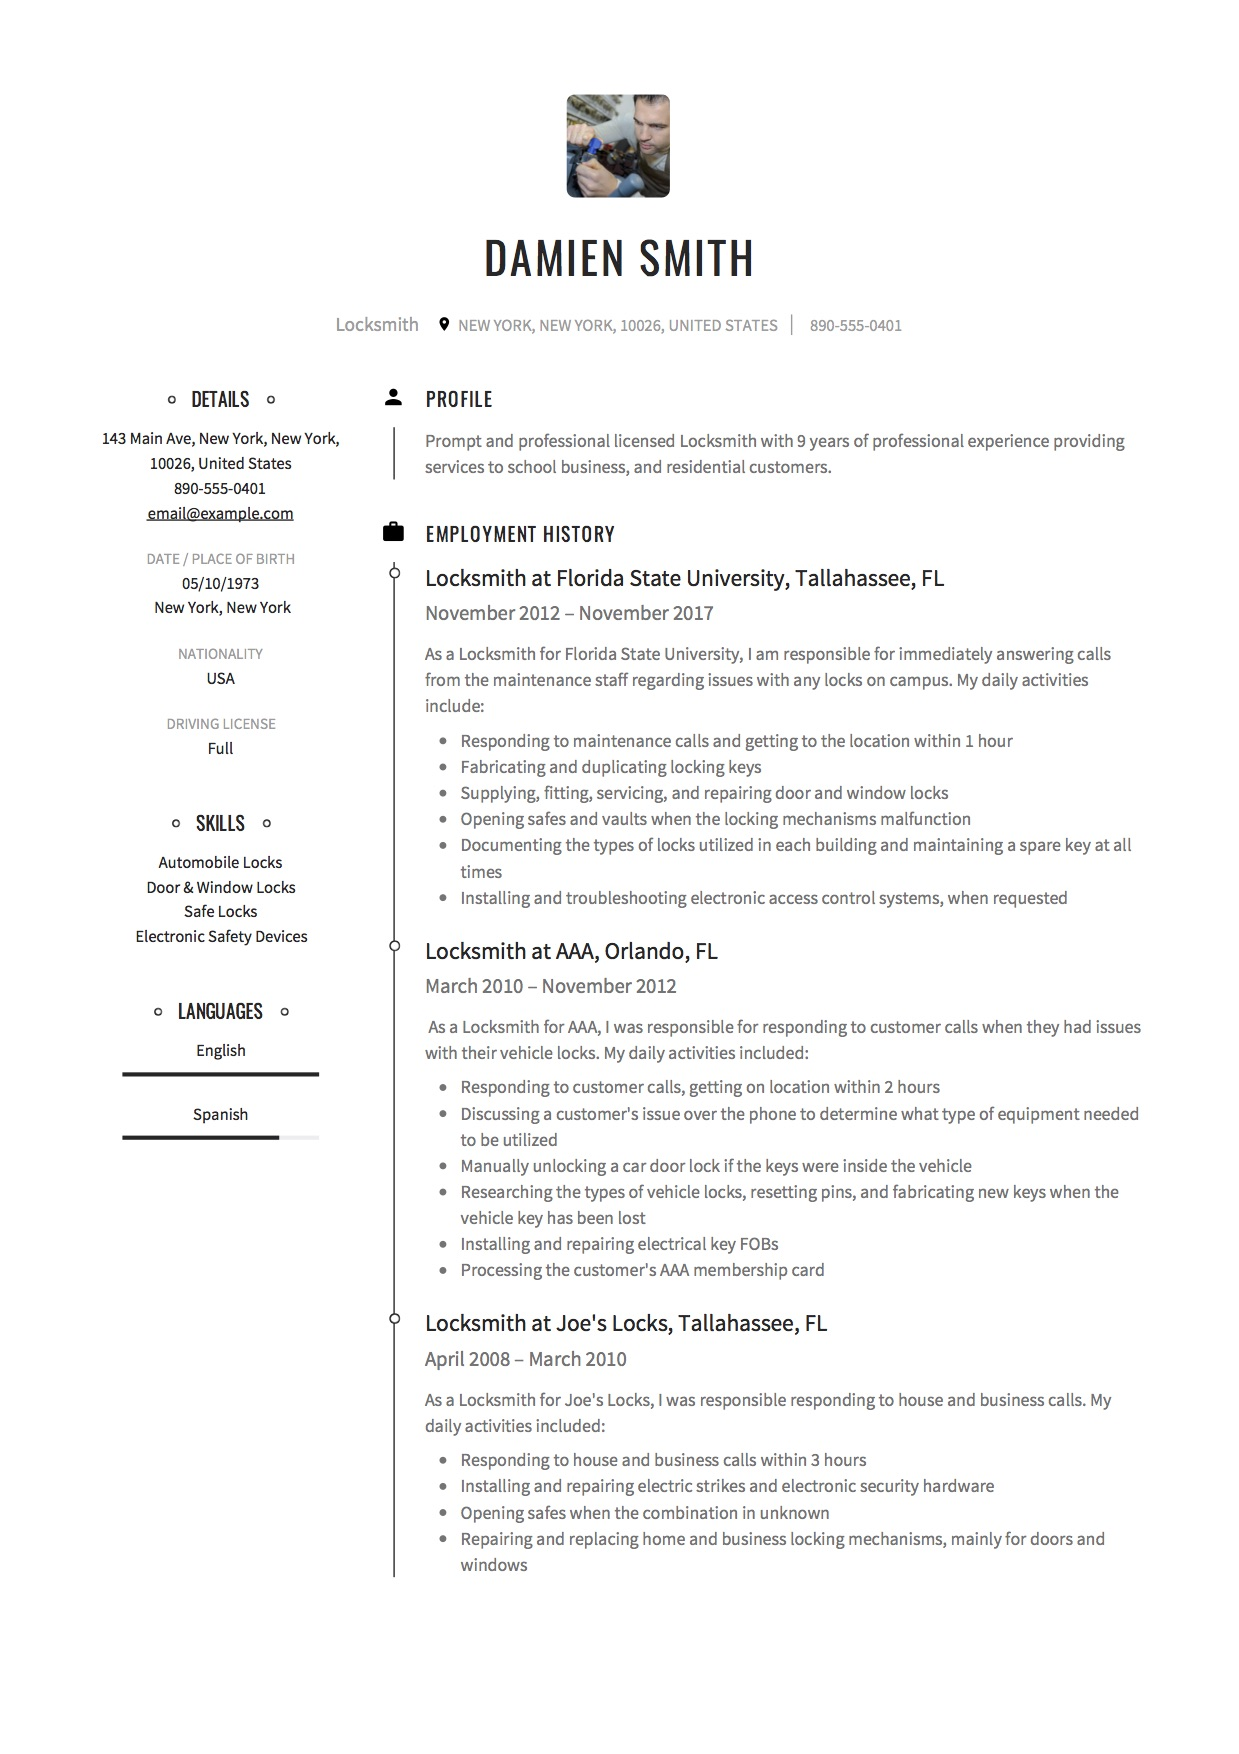 Creative Resume Locksmith